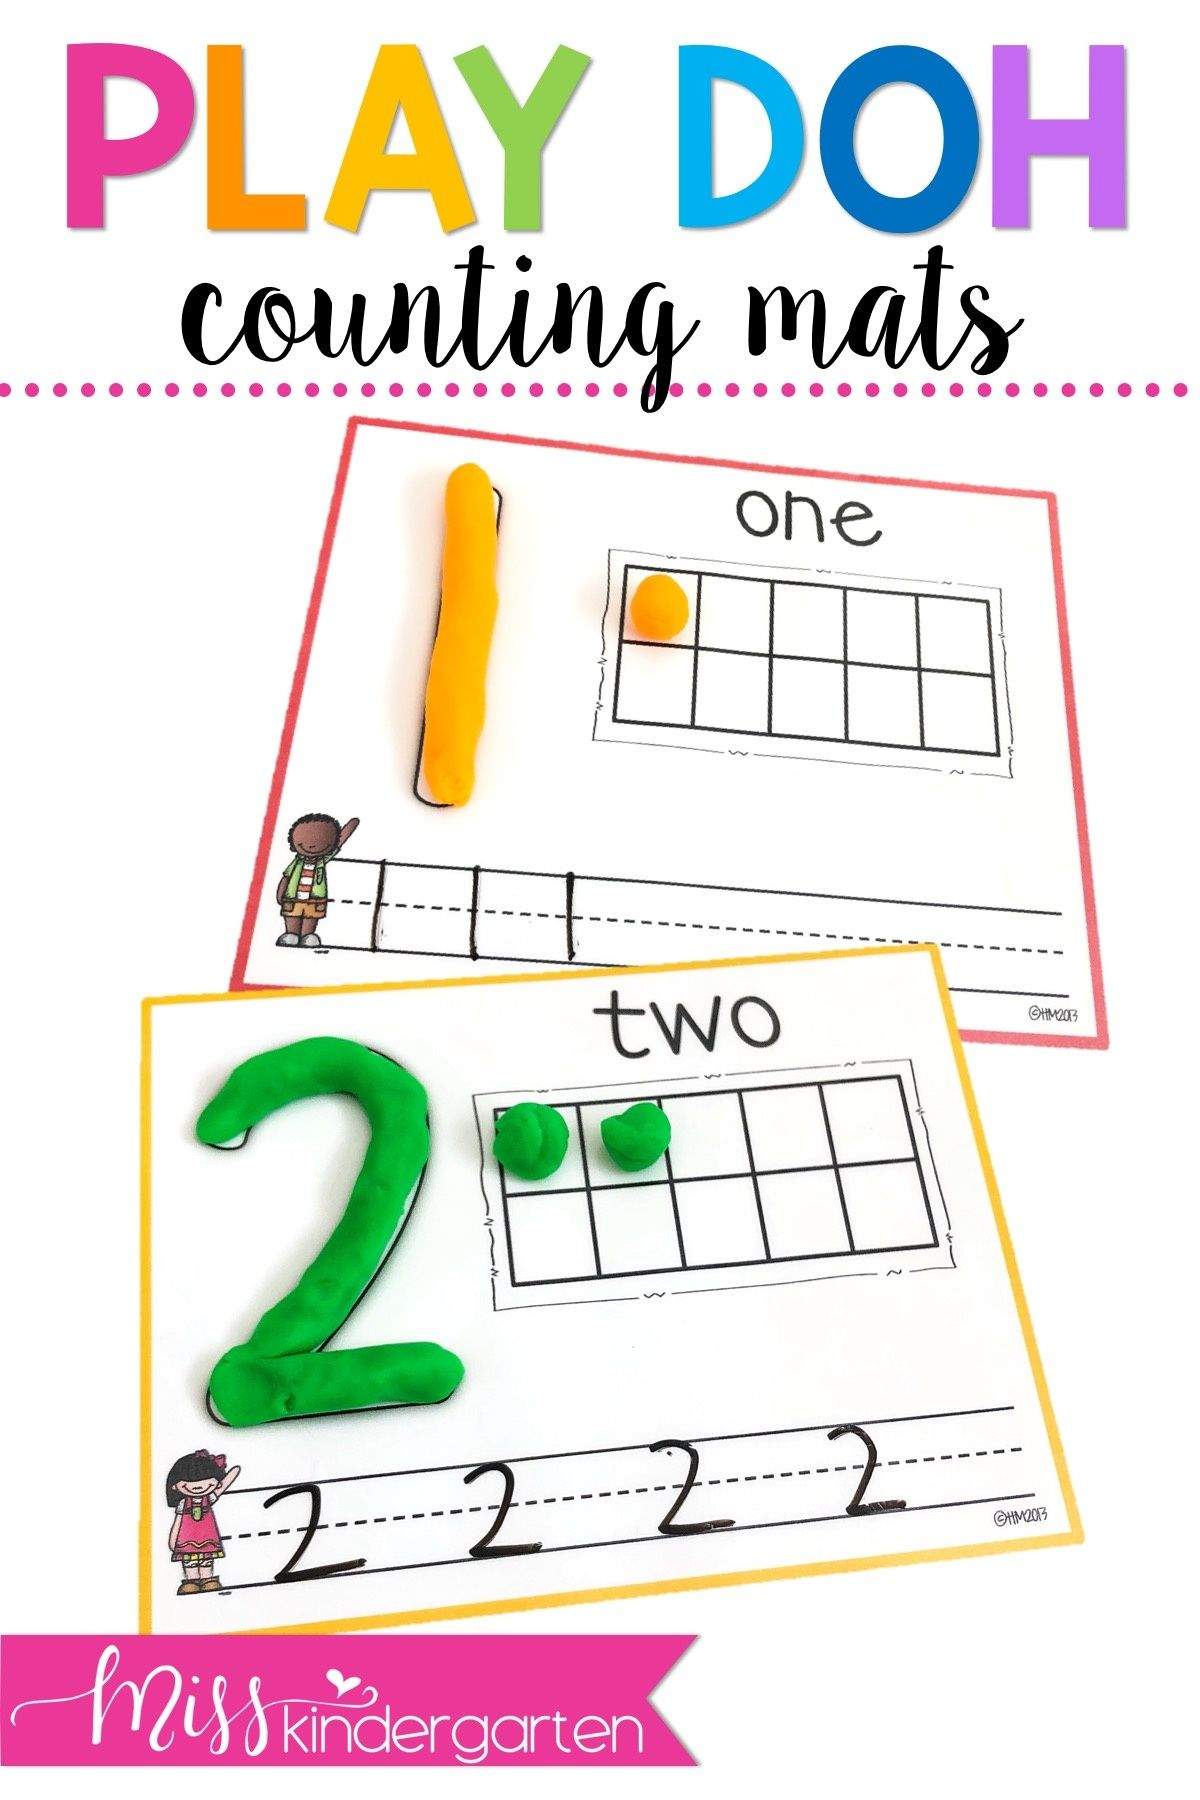 Printable Ten Frames And Numbers That Double As Play Doh Mats For Fantastic Fine Motor Ski Kindergarten Math Activities Math For Kids Kindergarten Lesson Plans